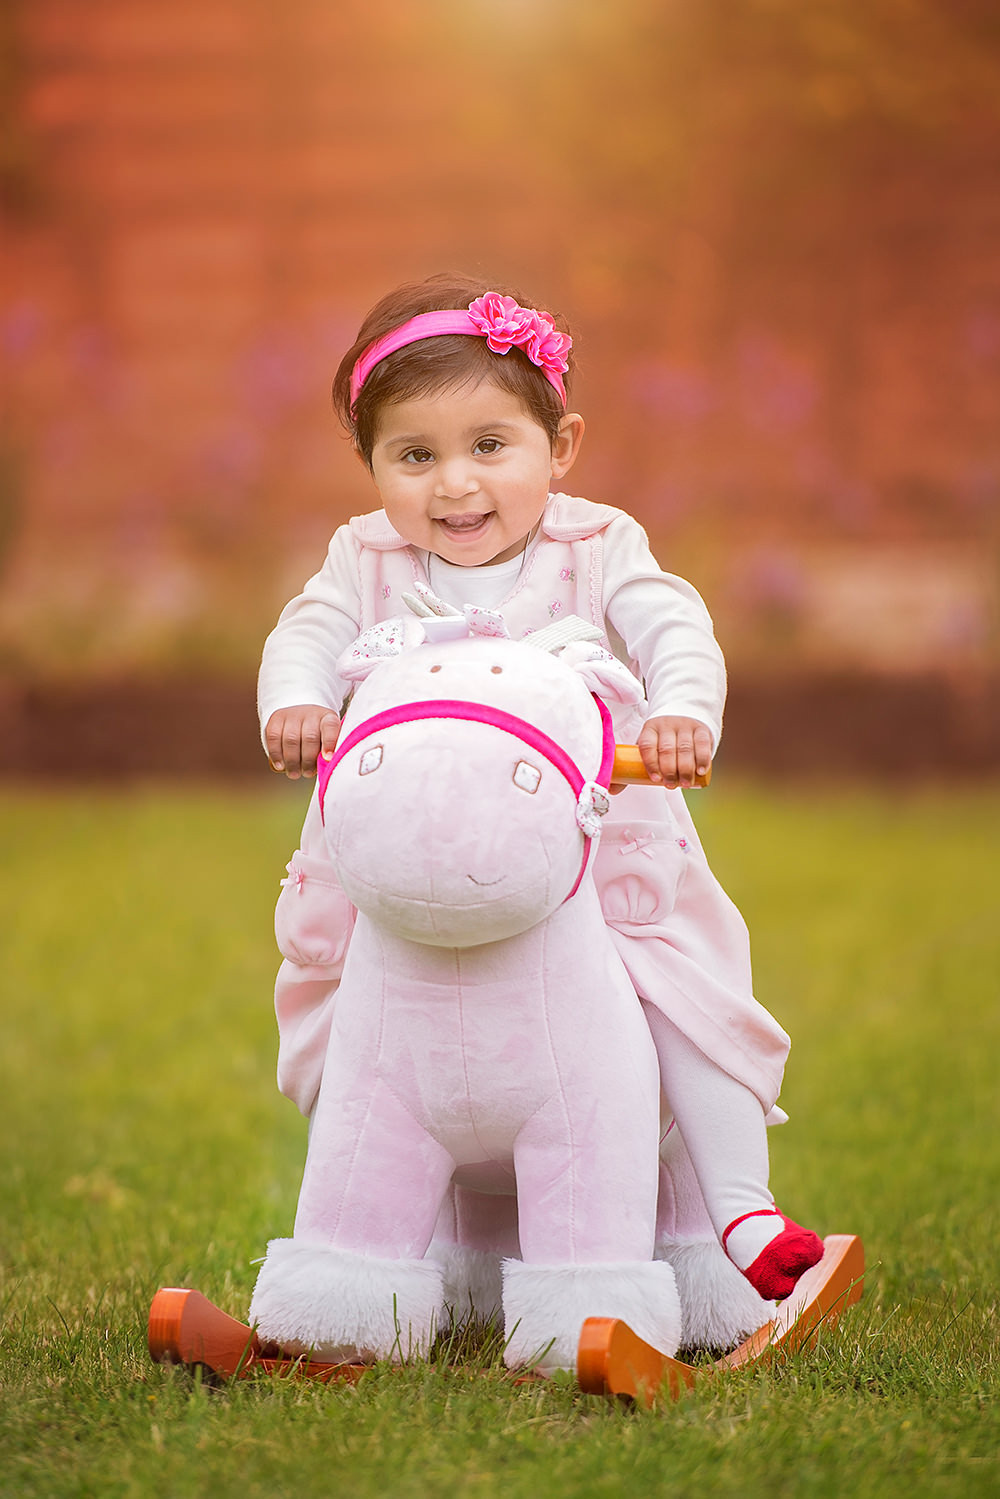 Baby Girl Portrait Photography.jpg